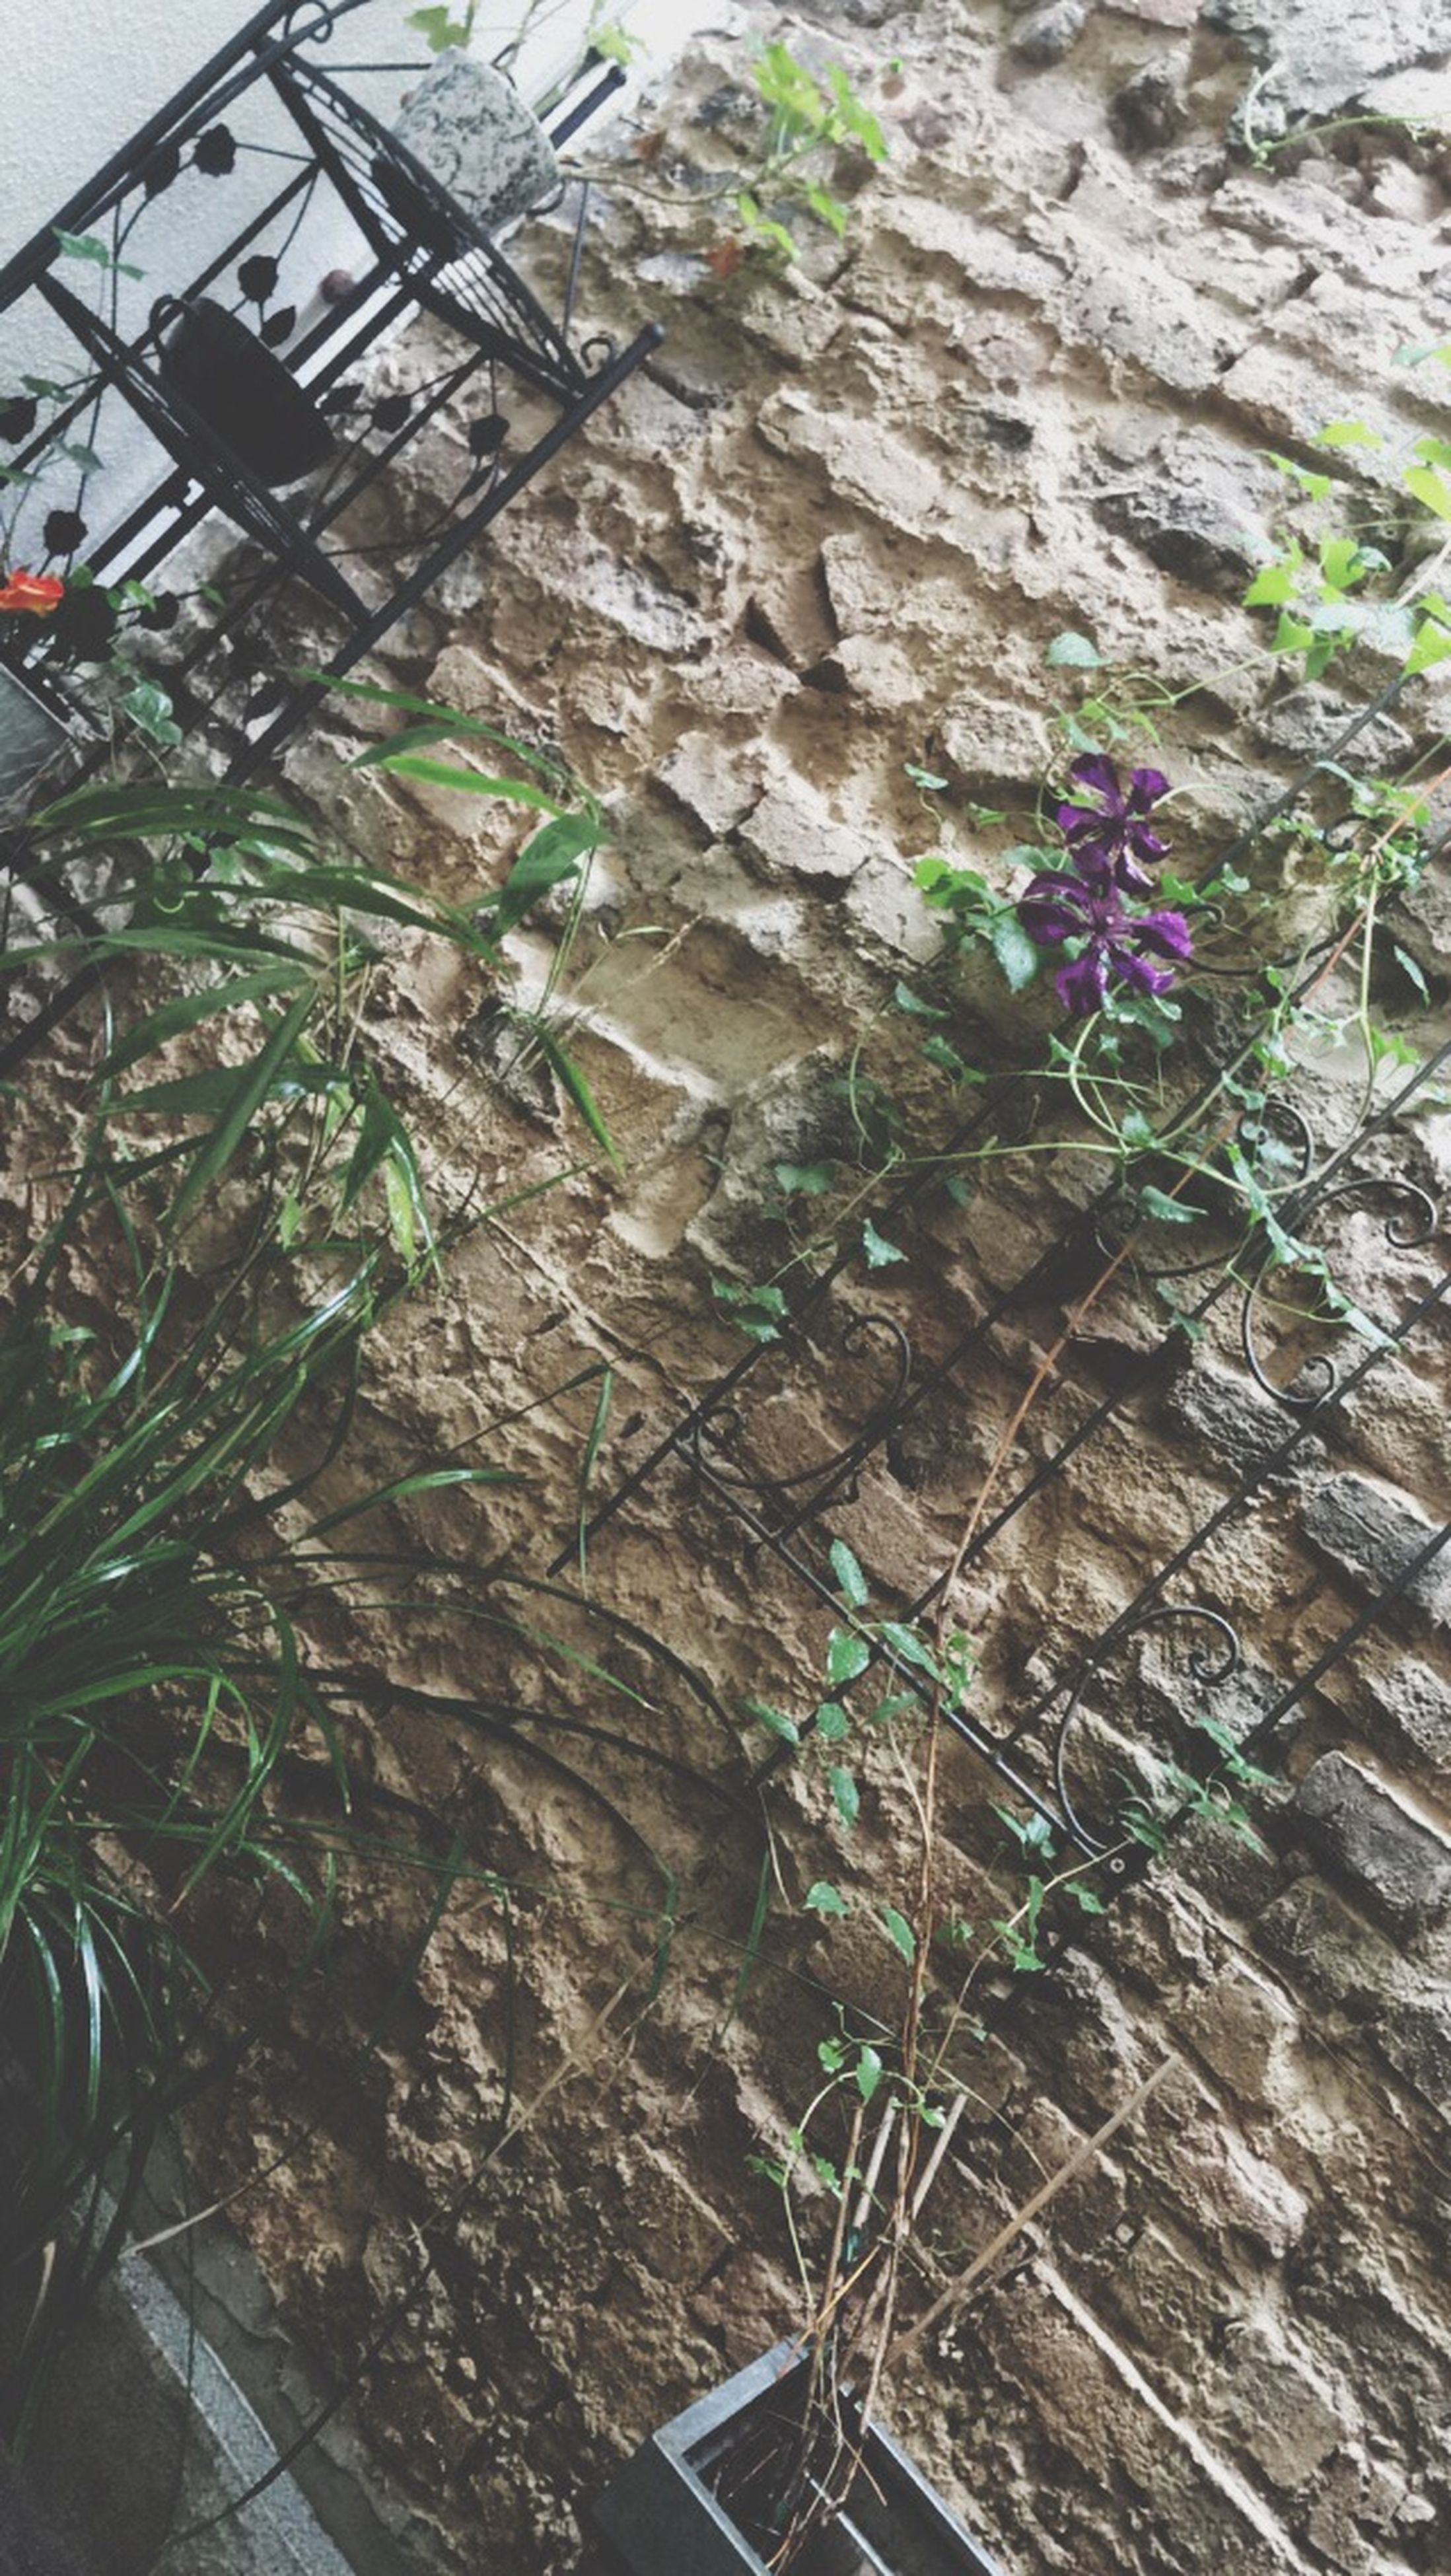 plant, growth, high angle view, built structure, day, outdoors, no people, wall - building feature, architecture, building exterior, nature, flower, sunlight, growing, close-up, transportation, low angle view, abandoned, tree, leaf